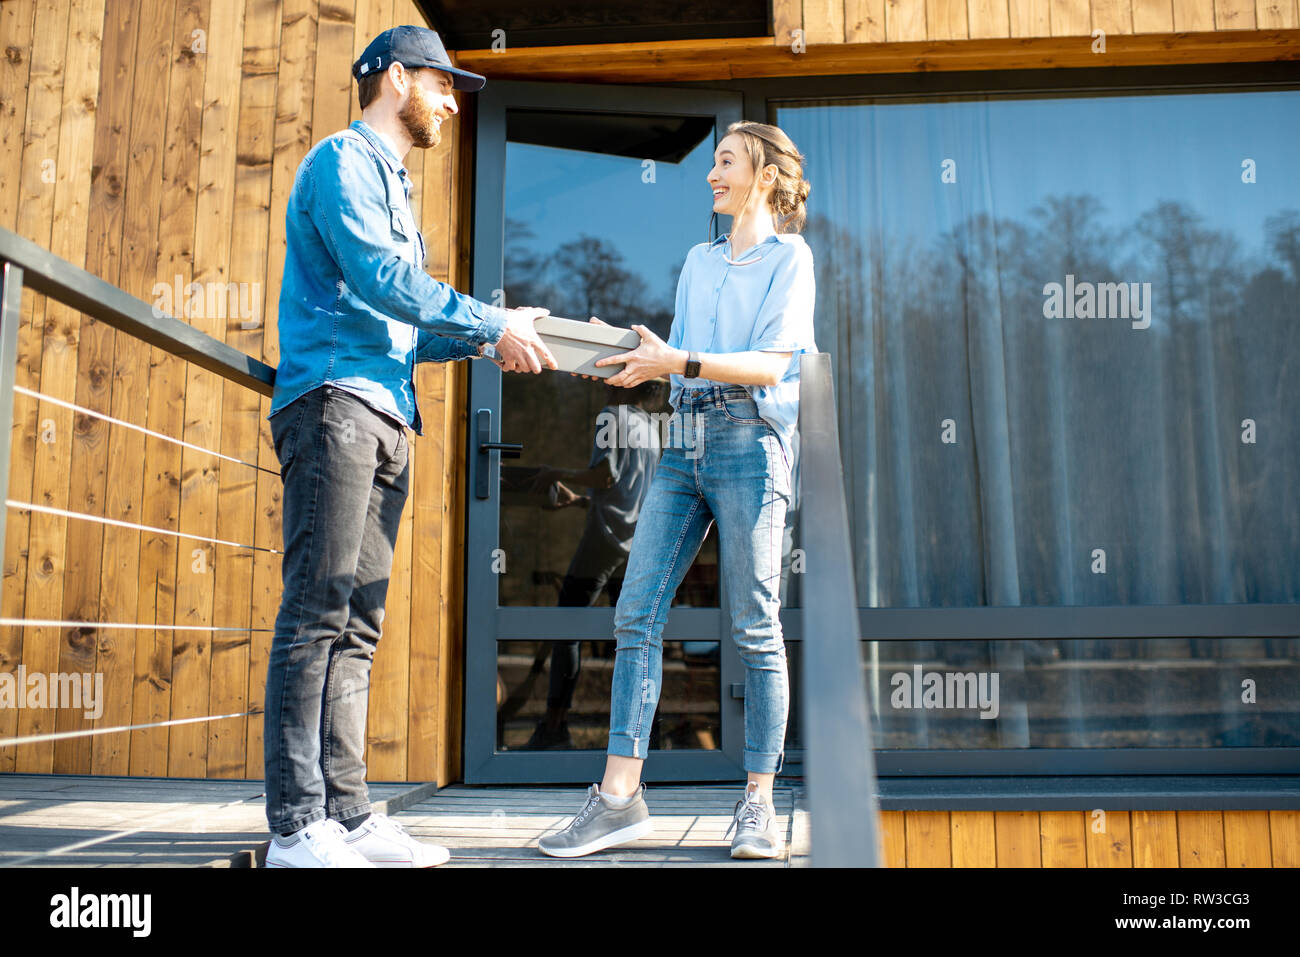 Delivery man bringing shoes home to a young woman client. Buying clothes online and delivery concept Stock Photo